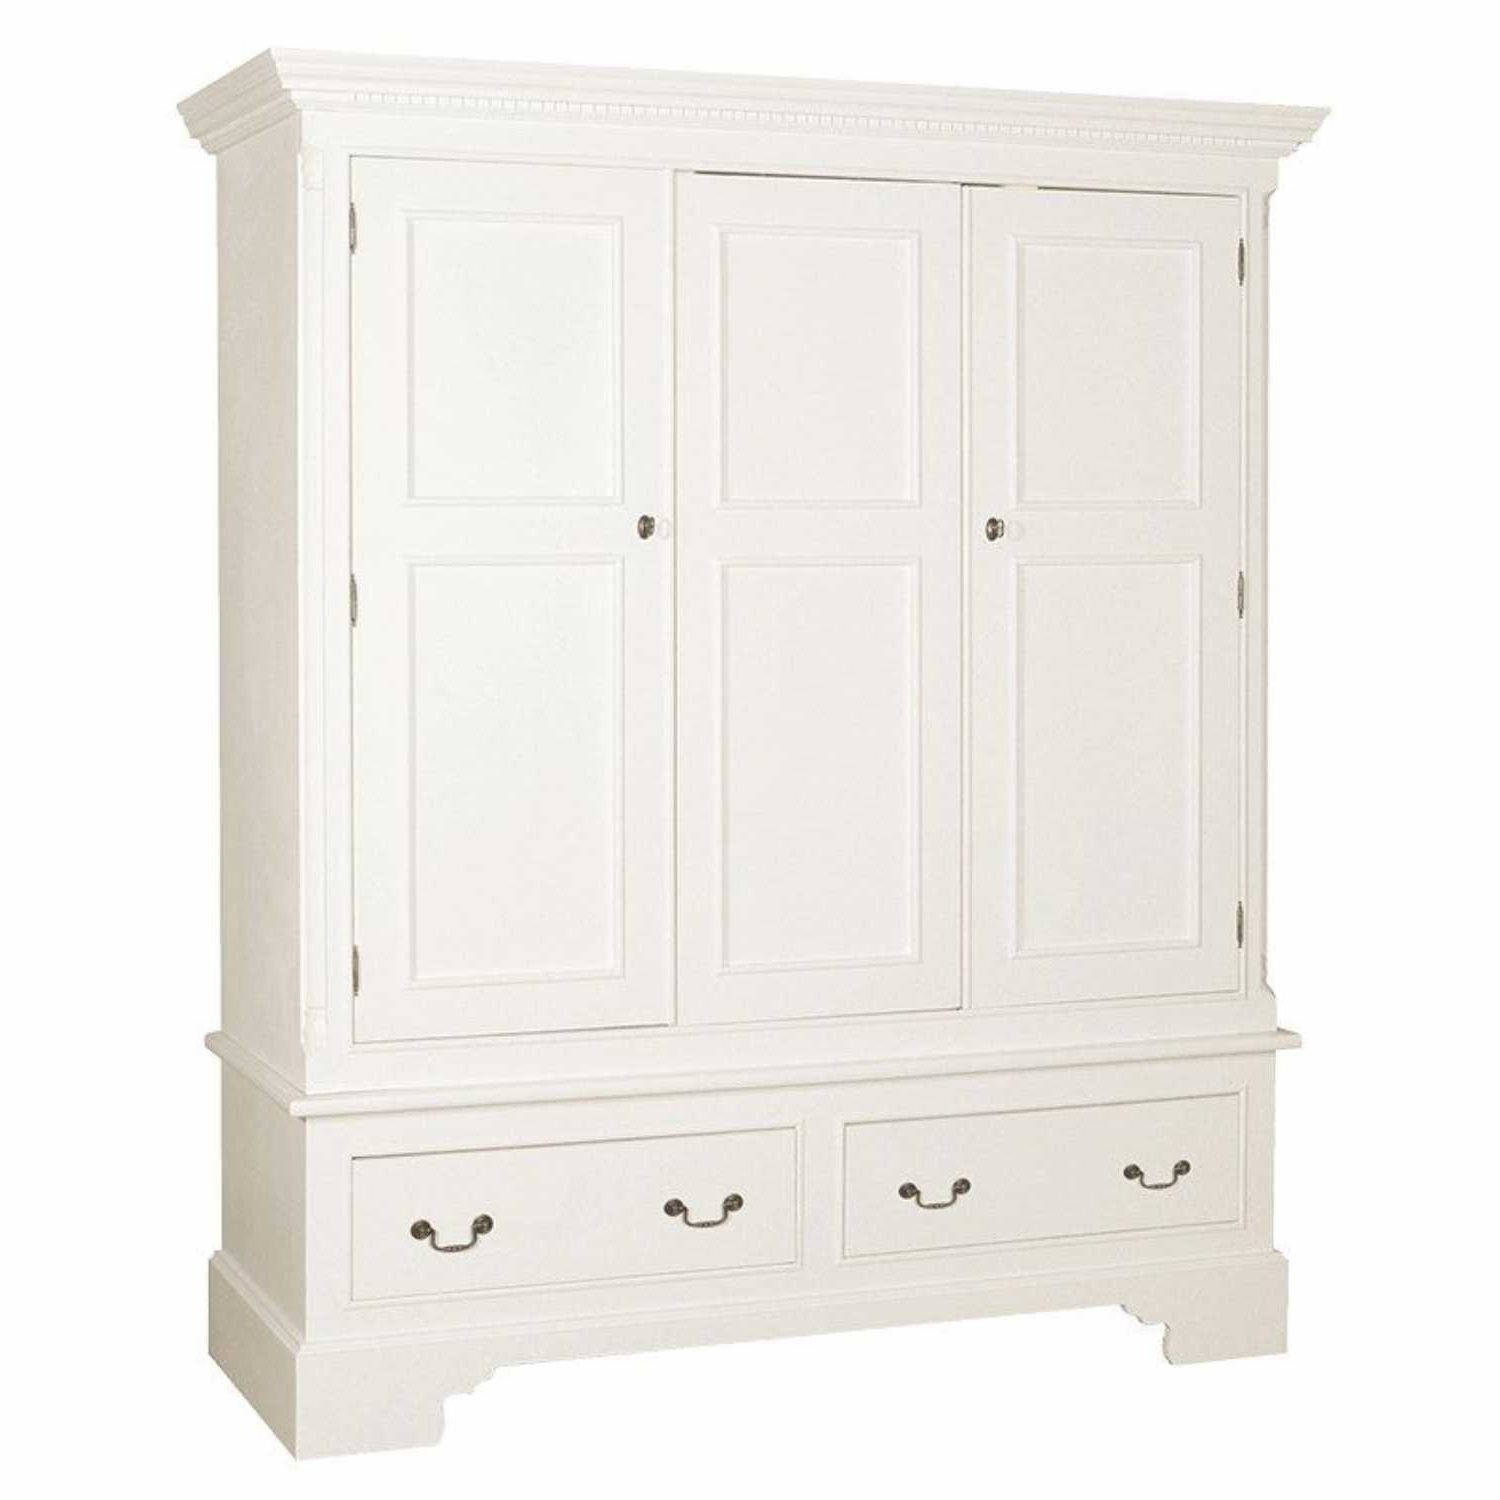 Best And Newest 3 Door White Wardrobes With Drawers In Single White Wardrobe With Drawers 3 Door 2 Argos This Will Be A (View 6 of 15)